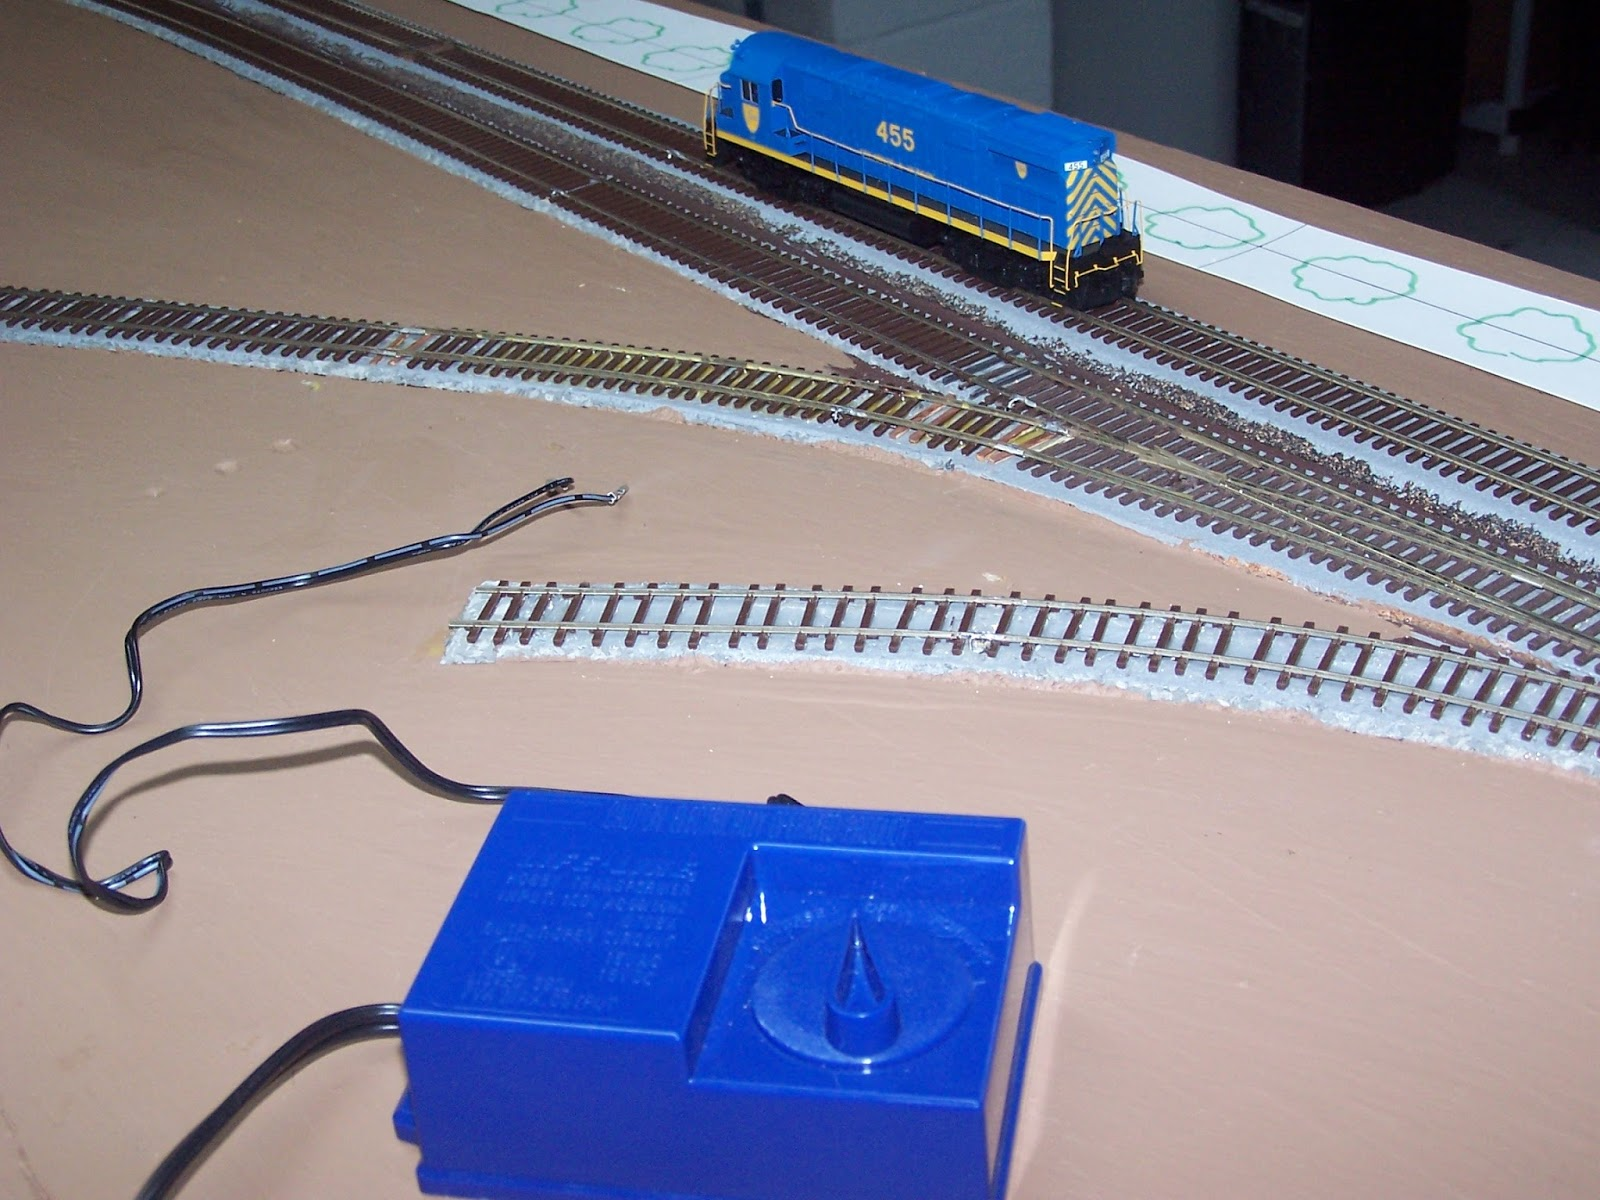 D H Colonie Main Layout Wiring The Part 1 Dcc As Well Model Train Layouts On In End I Had To Test My Work But Most Of Engines Have Decoders And Didnt Want Dig Out Bachmann System